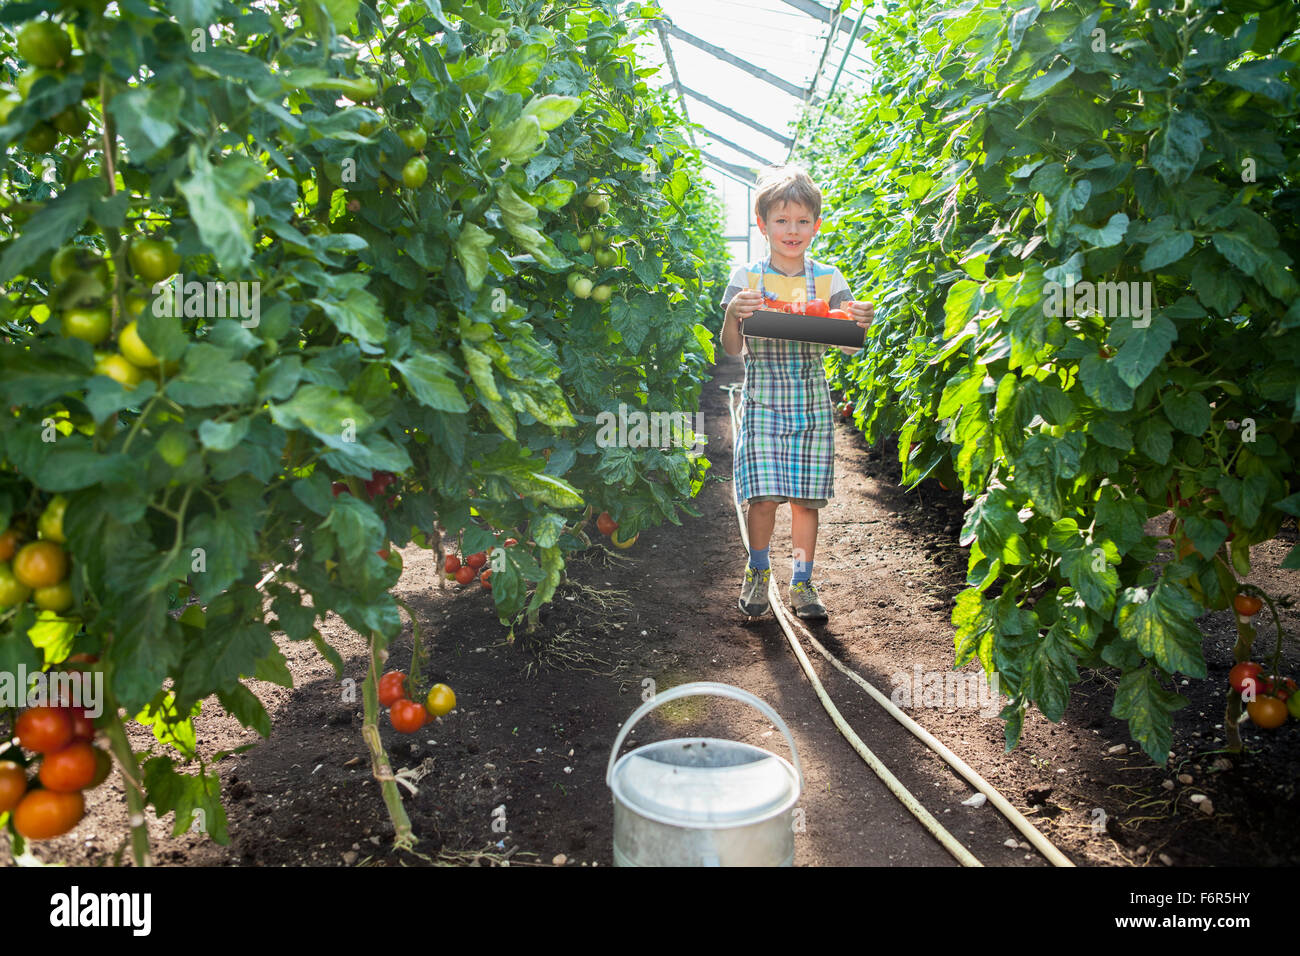 Boy in greenhouse among tomato plants - Stock Image